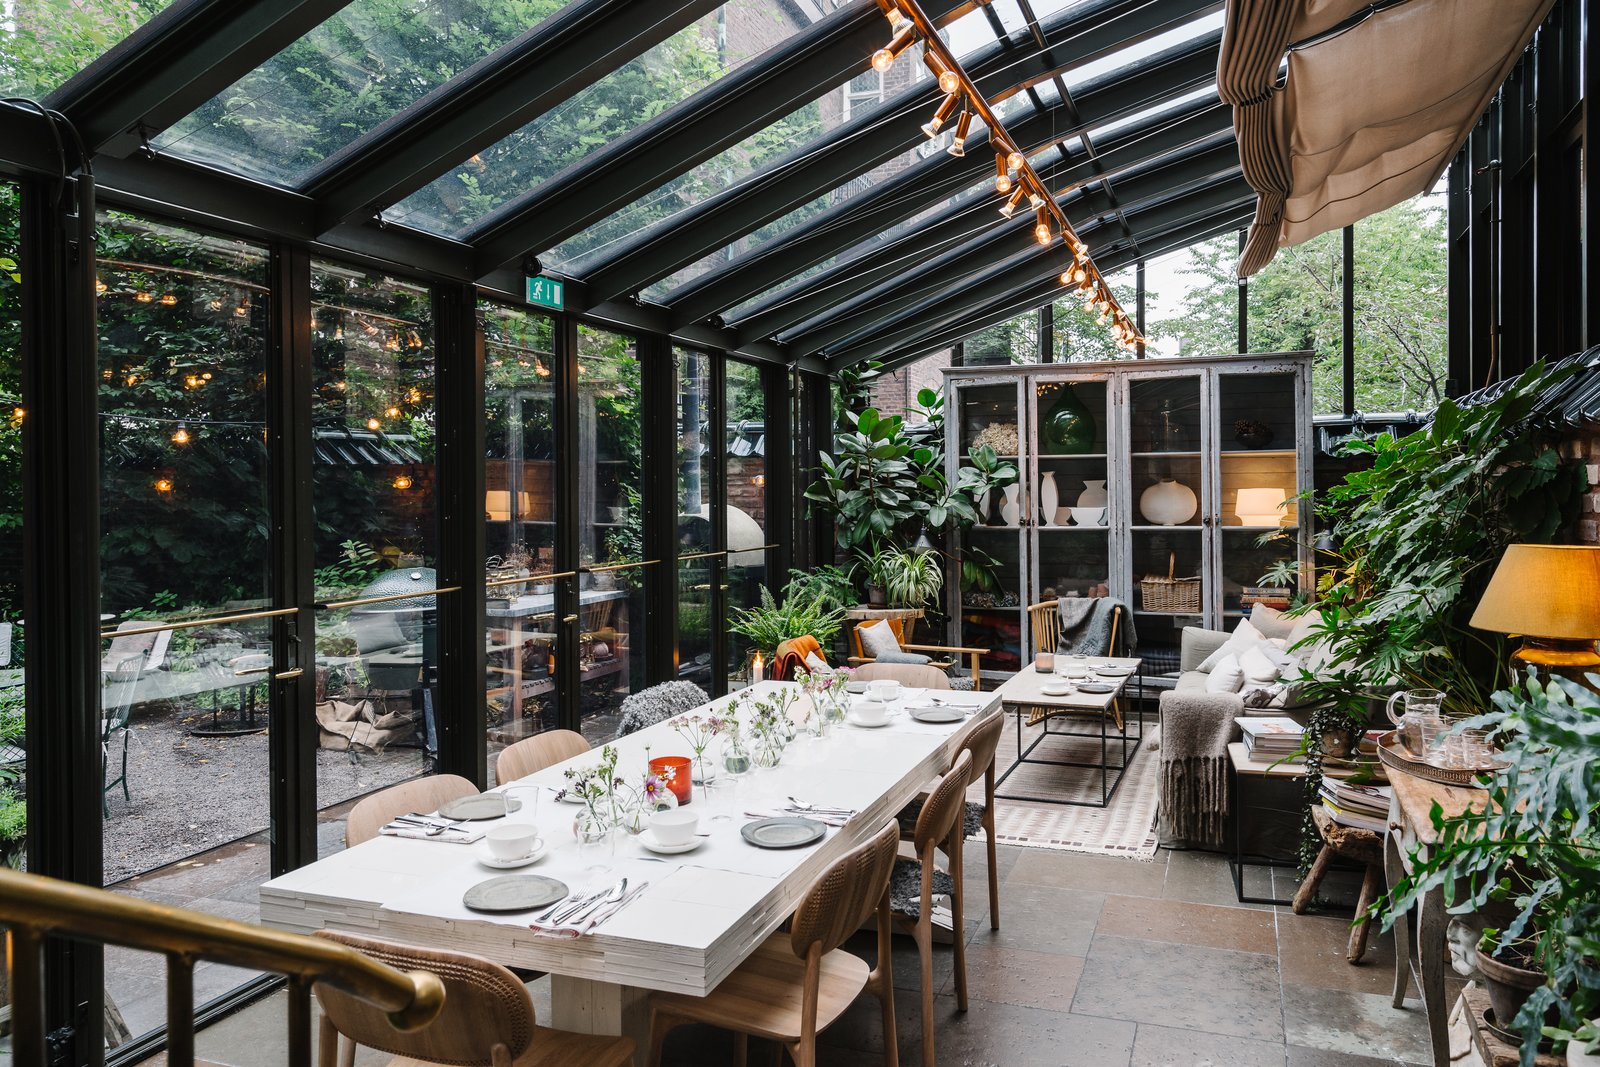 Crawford added a covered patio where guests can relax and enjoy a meal within the garden. The leafy glass house houses modern, natural-feeling wood furnishings and cozy textiles.